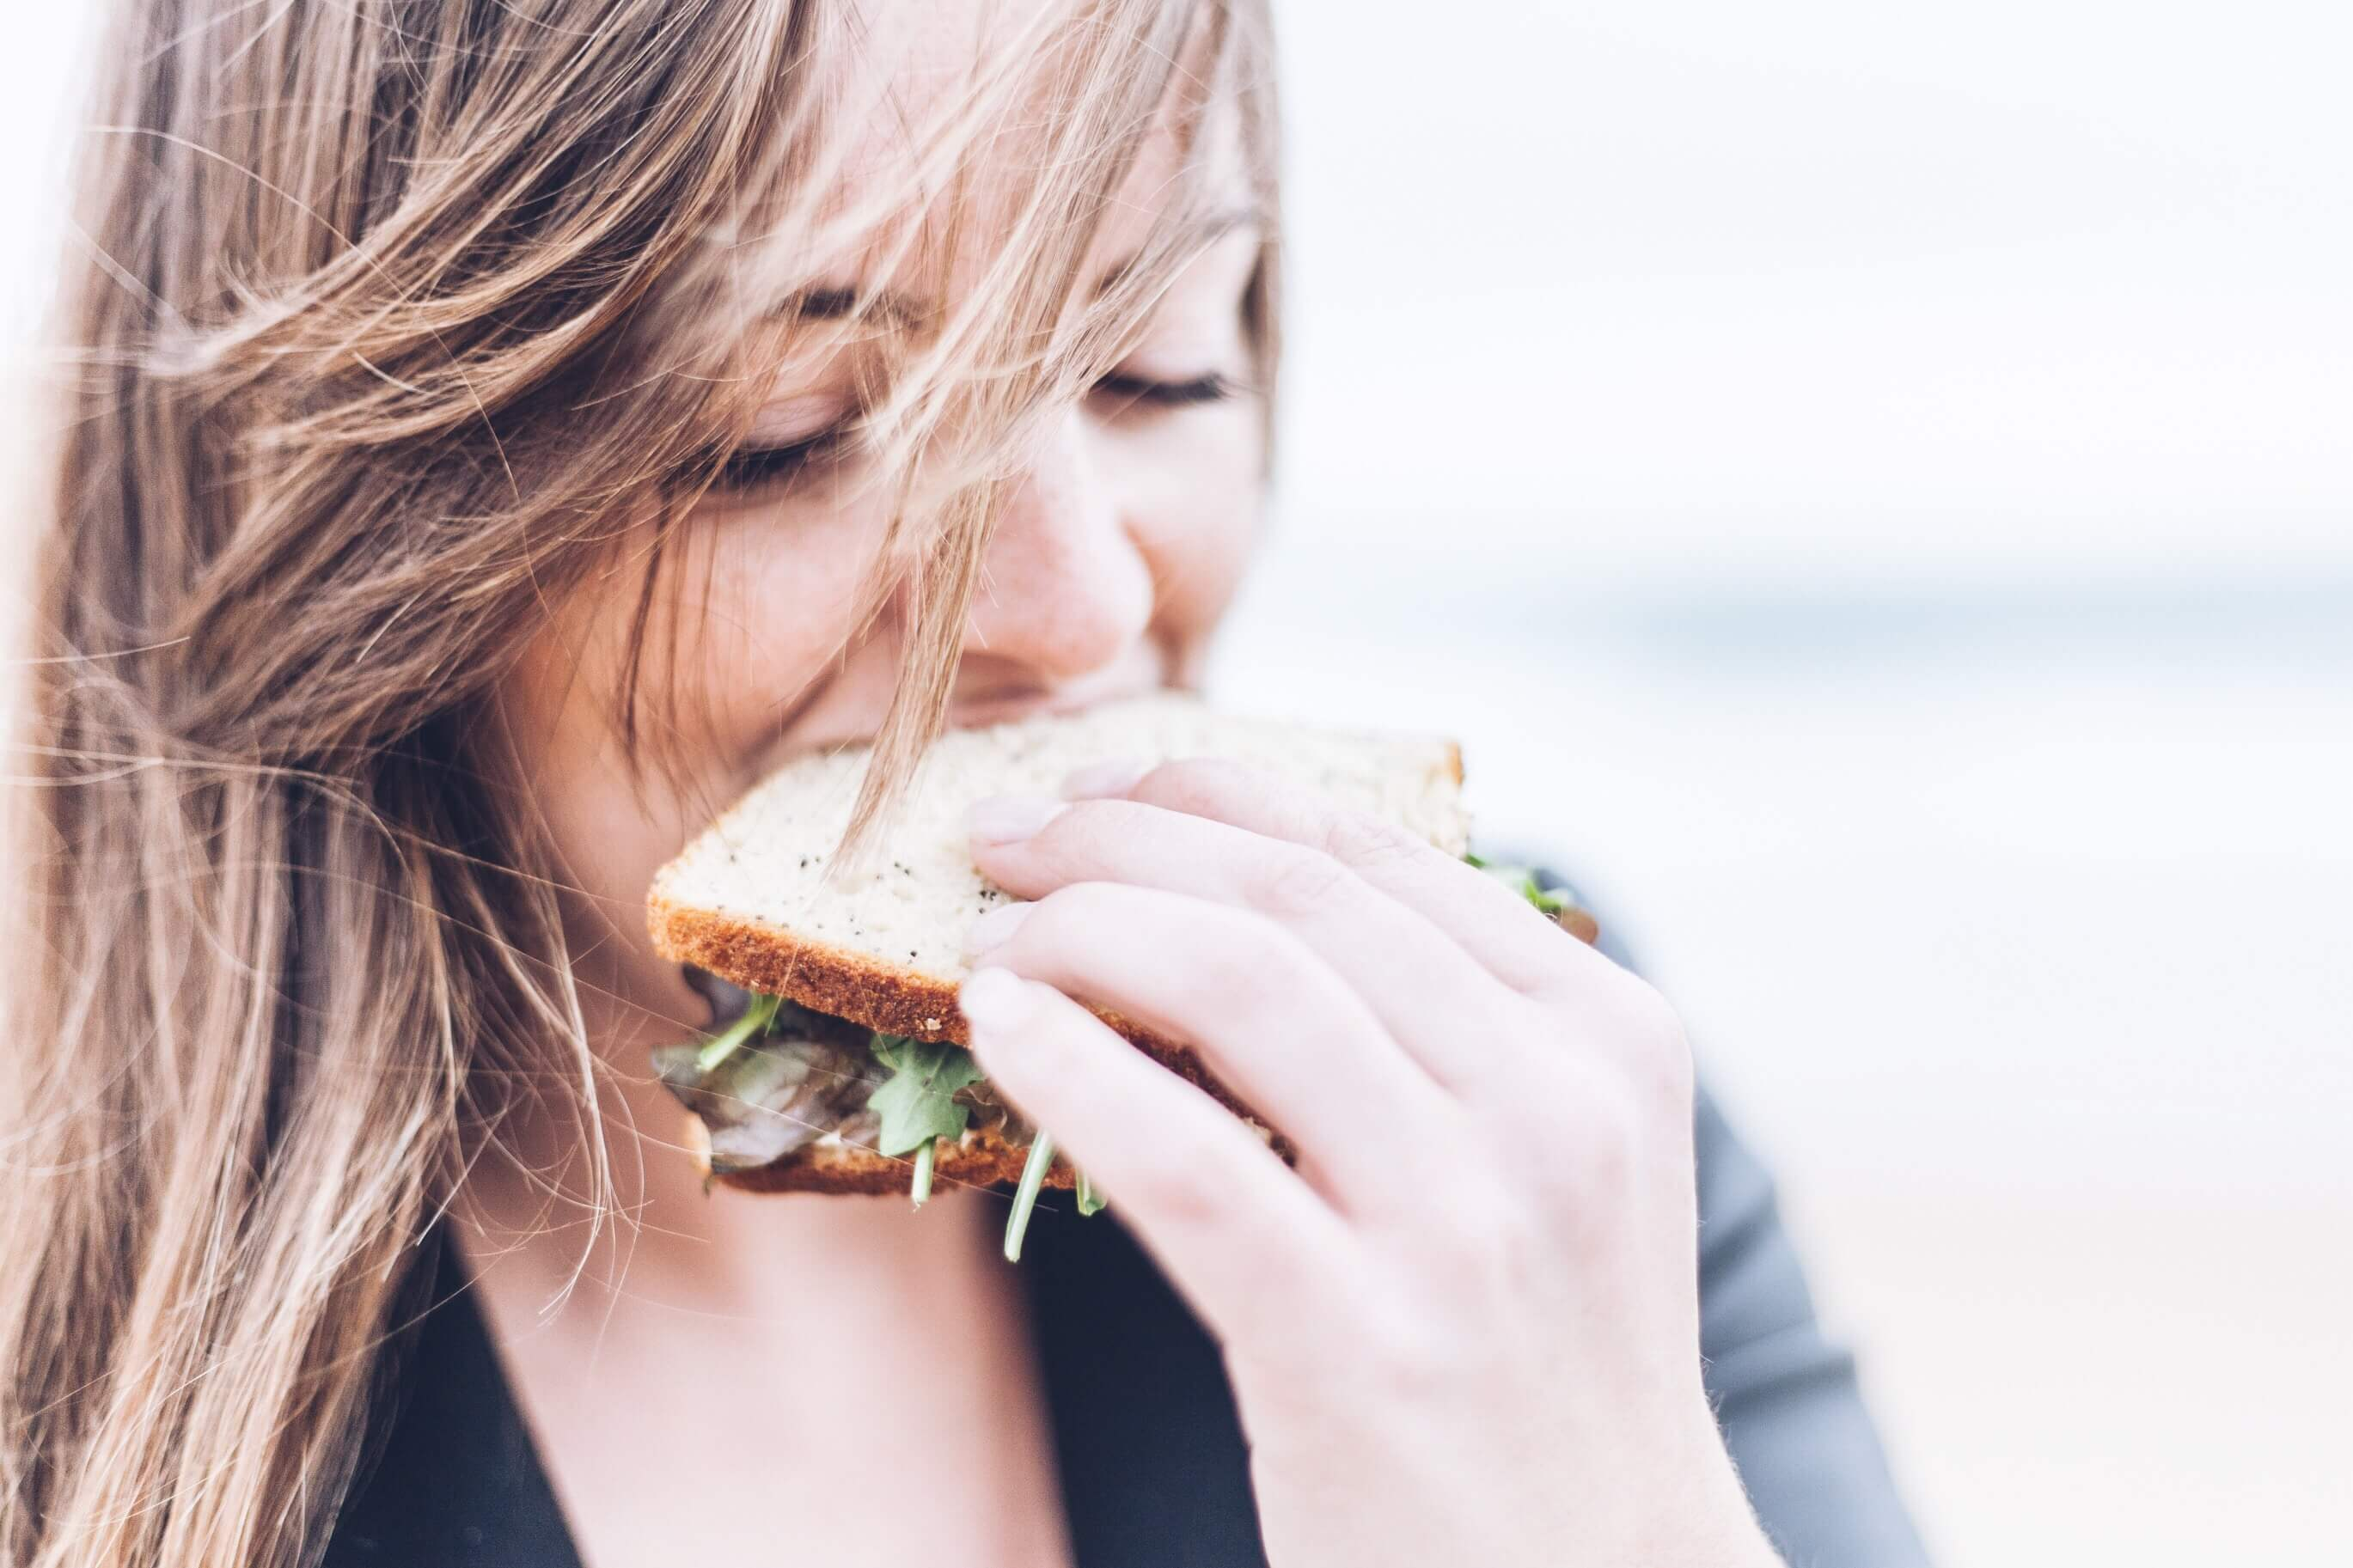 is a sandwich part of the mediterranean diet plan? if it contains cheese, it could be